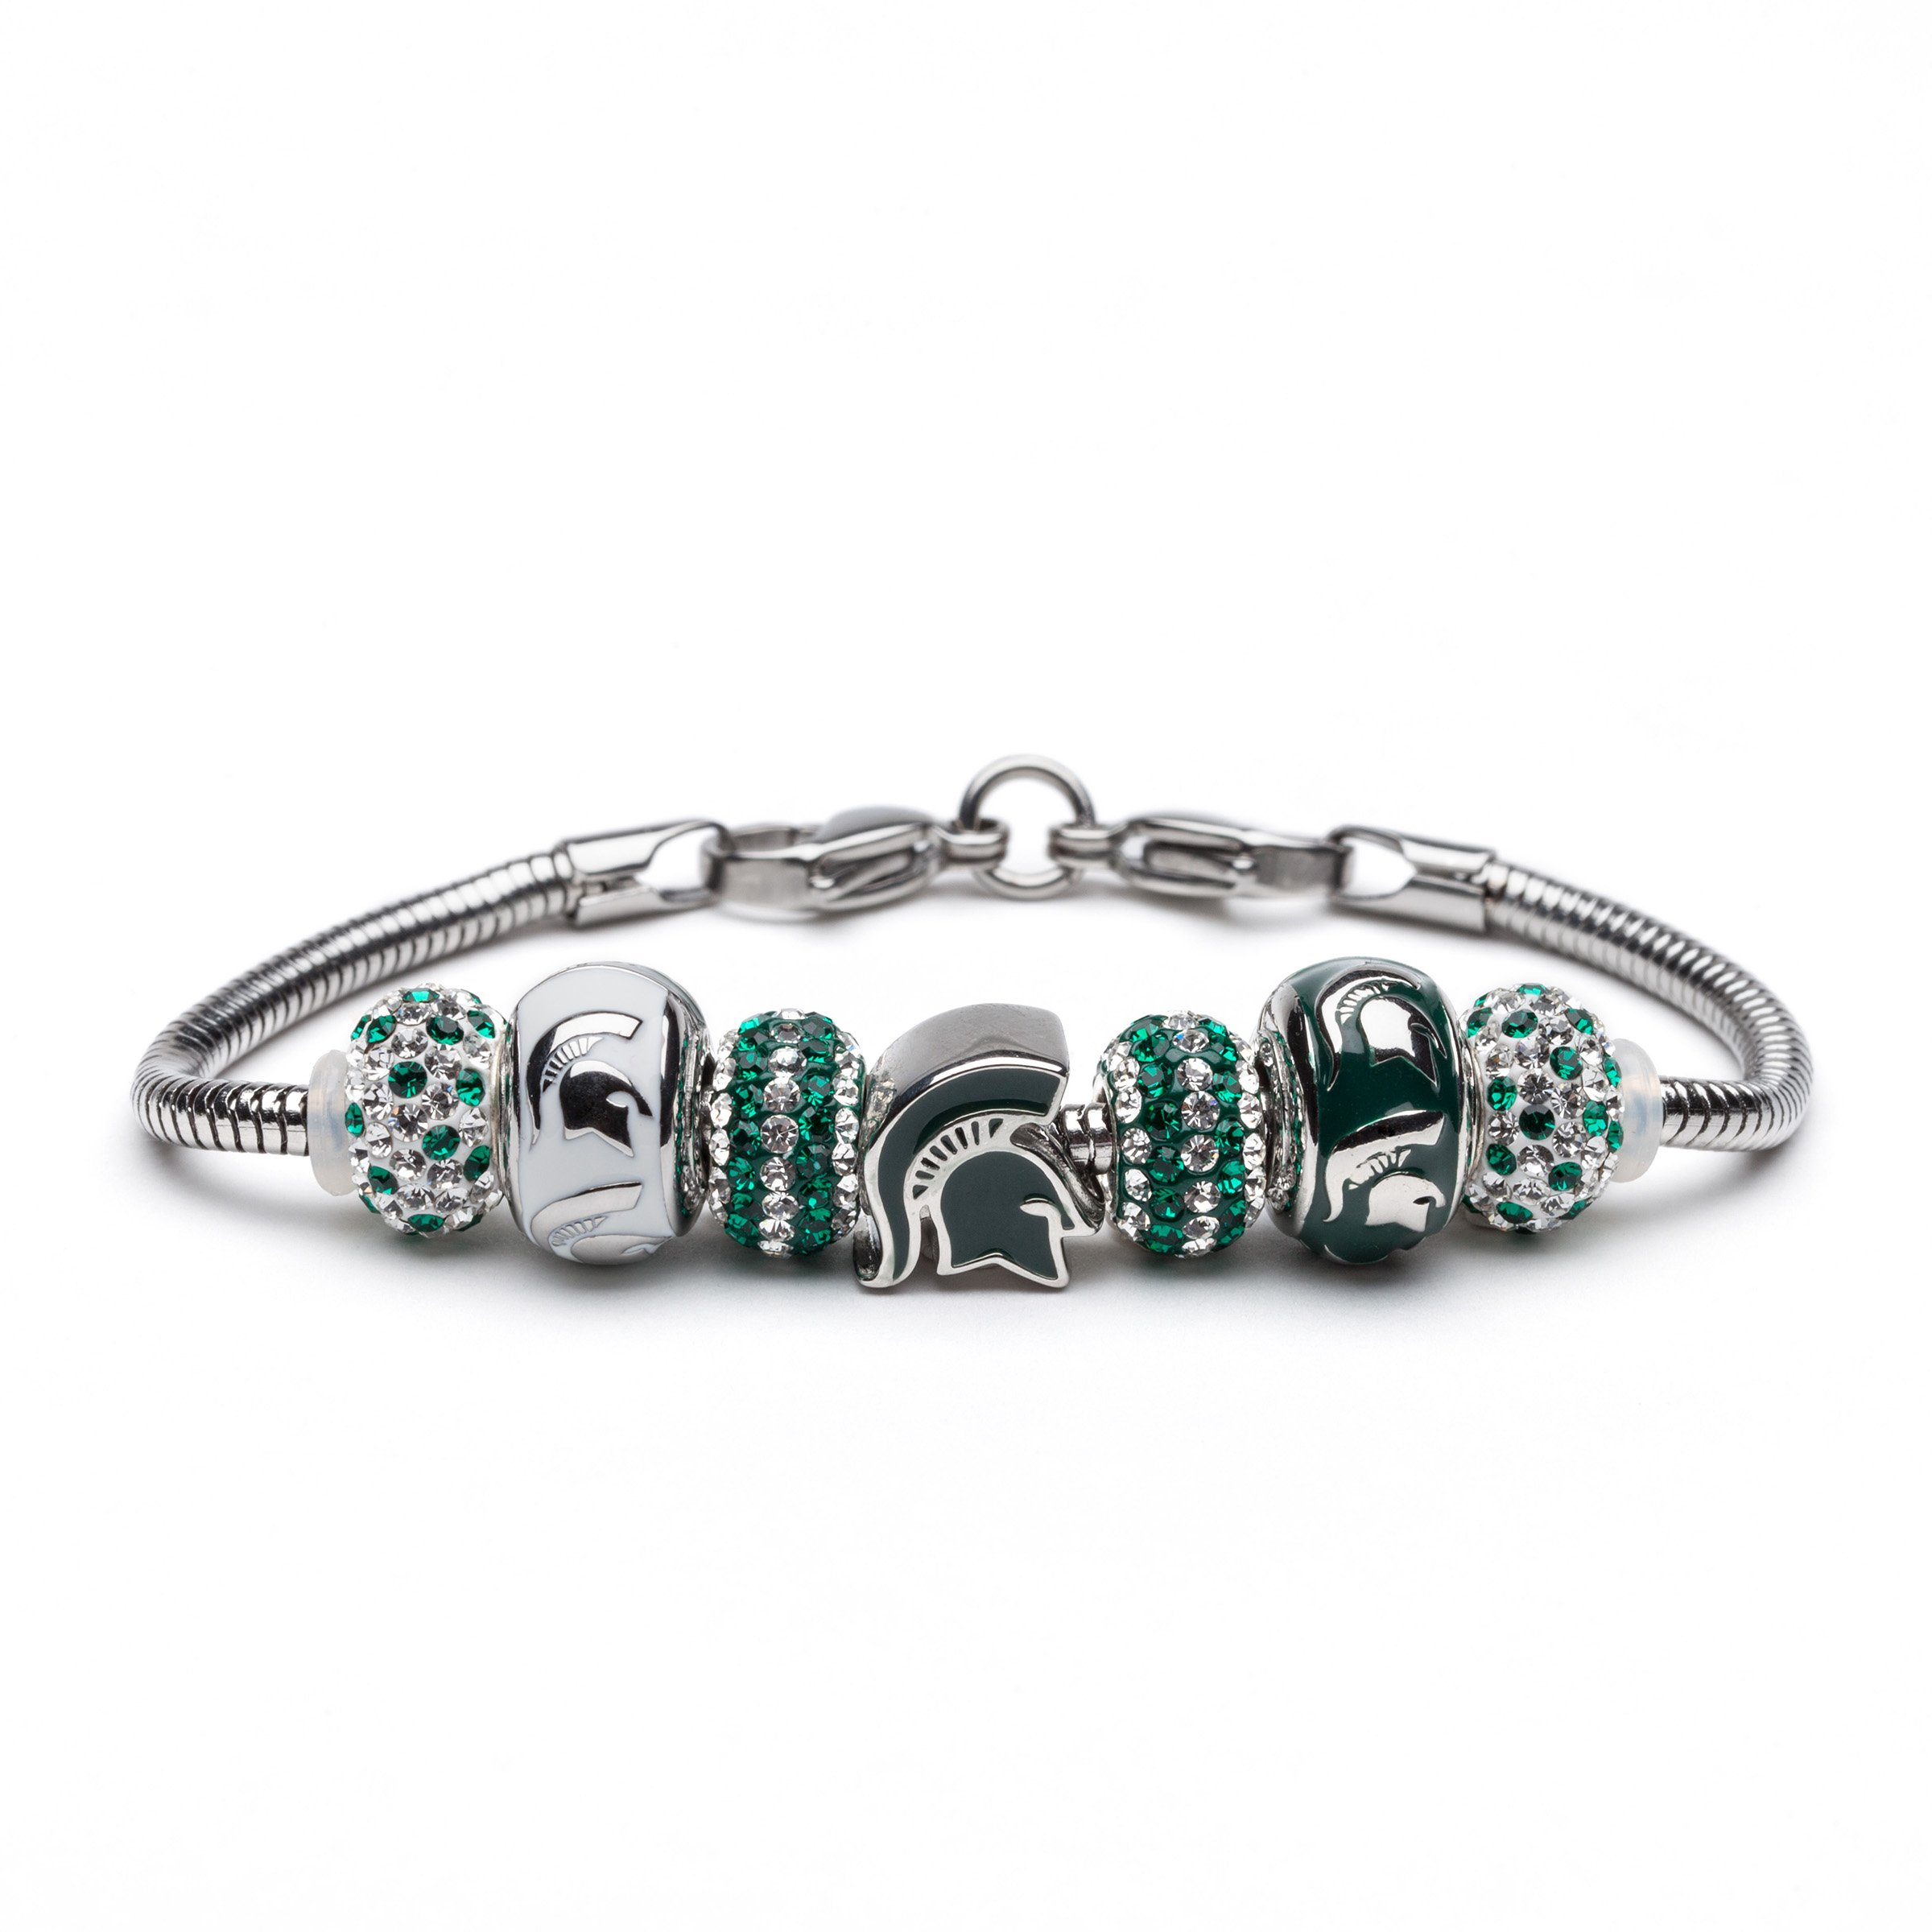 Michigan State Bracelet | MSU Spartans Charm Bracelet with 3 Spartan Charms and 4 Crystal Beads | Officially Licensed Michigan State University Jewelry | Michigan State Gifts | Stainless Steel by Stone Armory (Image #1)